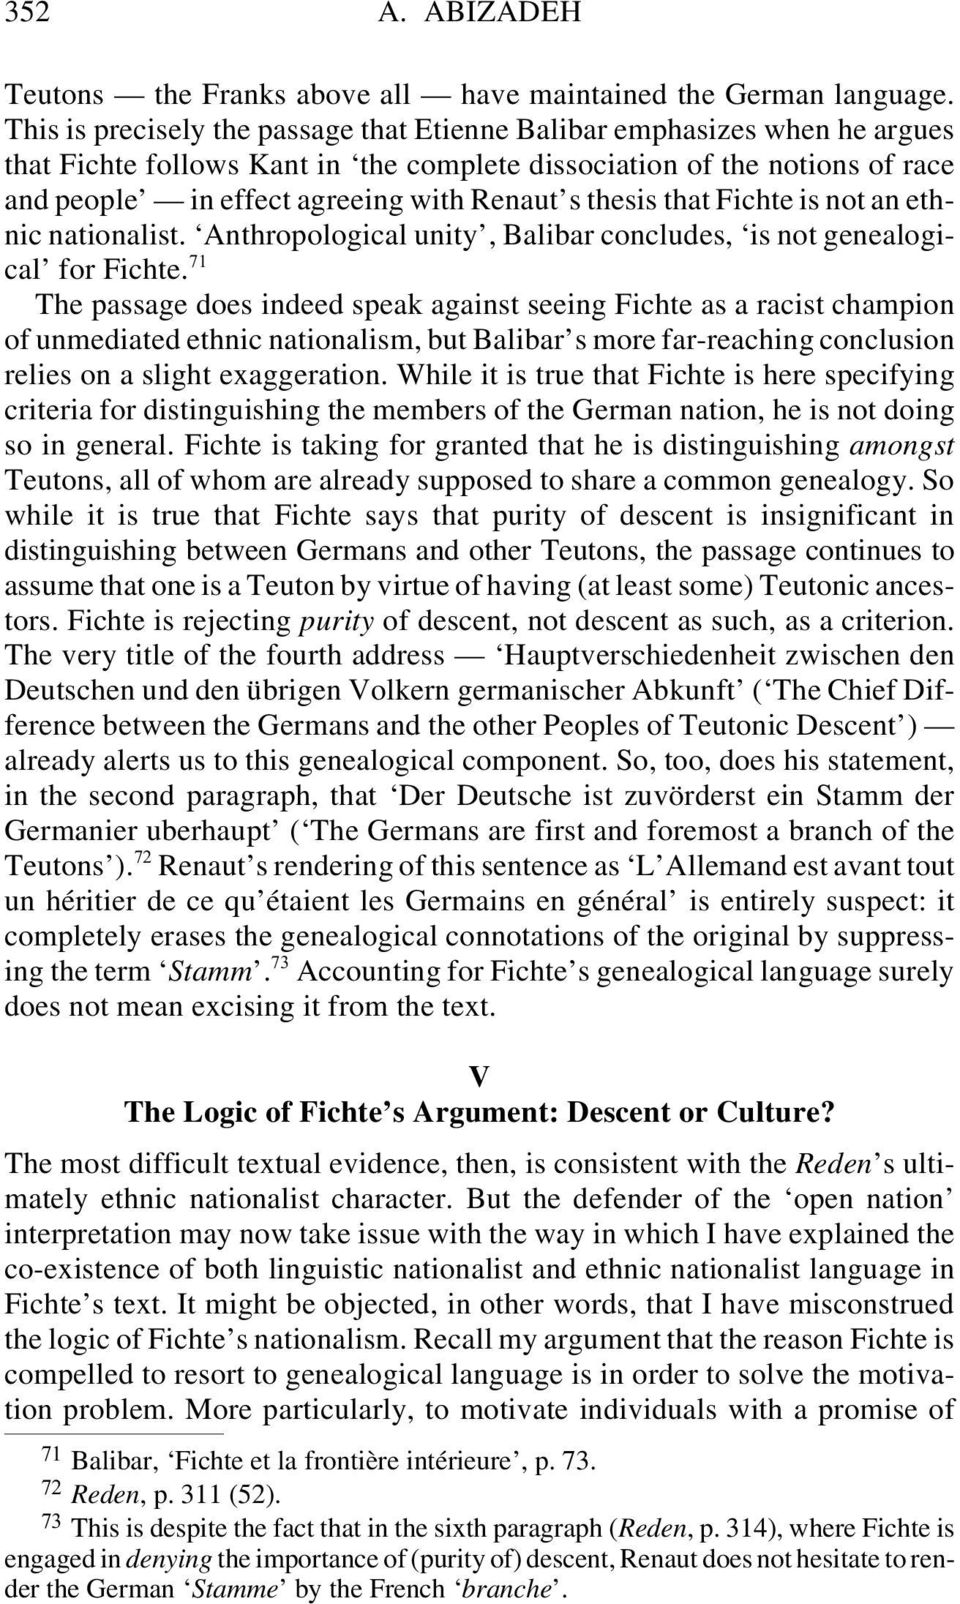 thesis that Fichte is not an ethnic nationalist. Anthropological unity, Balibar concludes, is not genealogical for Fichte.